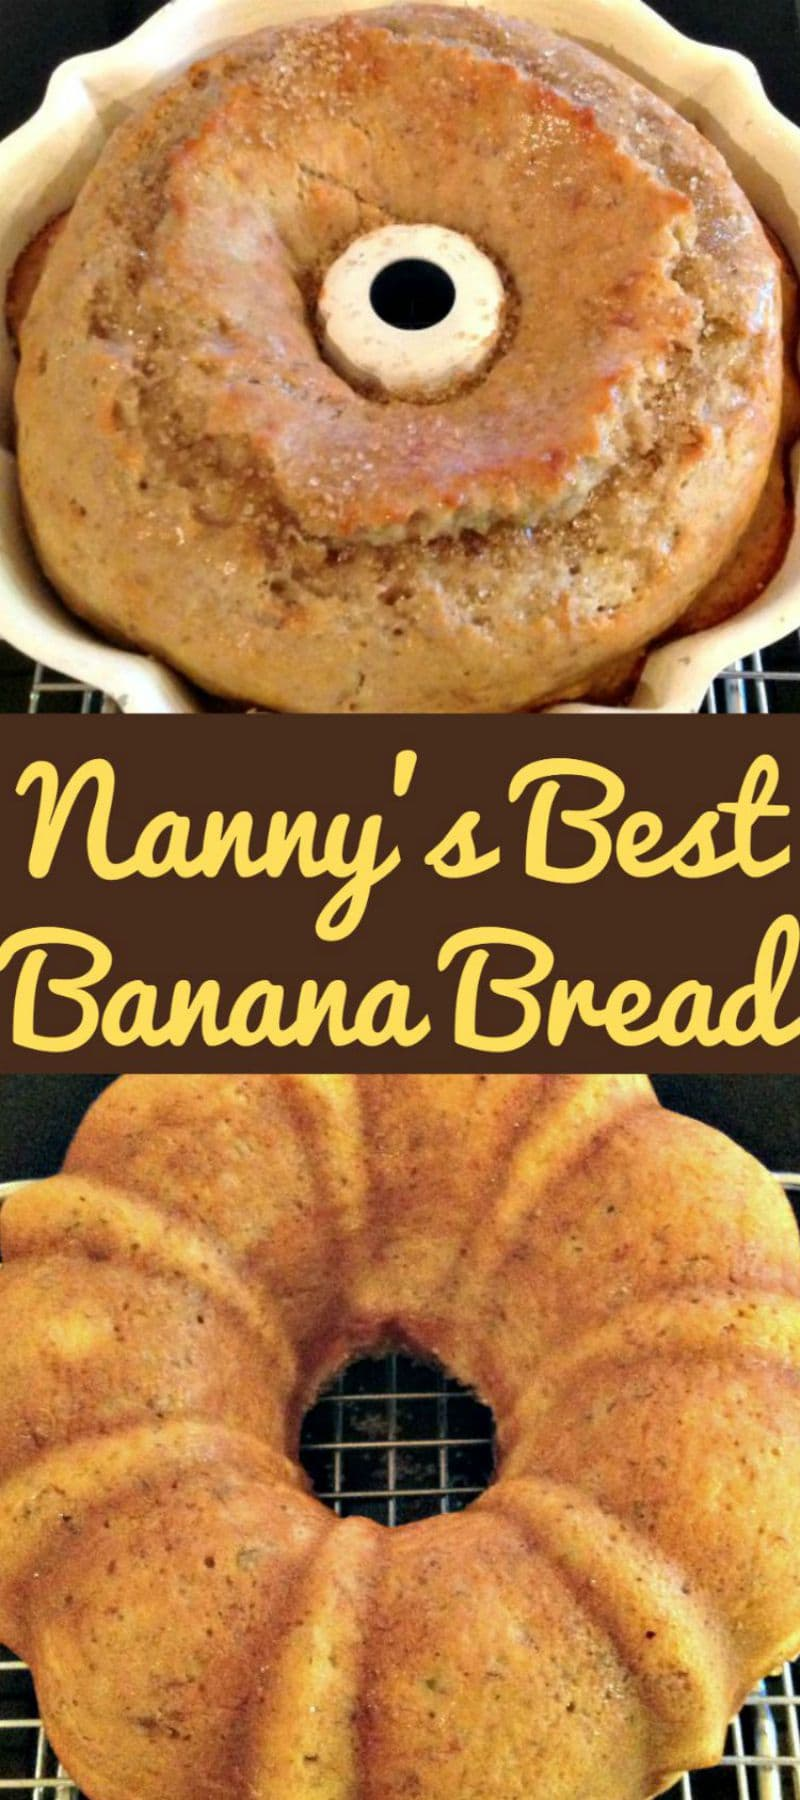 Nanny's BEST Banana Bread is a lovely soft, moist cake and absolutely delicious with the glazed poured over! A nice, easy recipe and freezer friendly too! #nannysrecipes #bananabread #cake